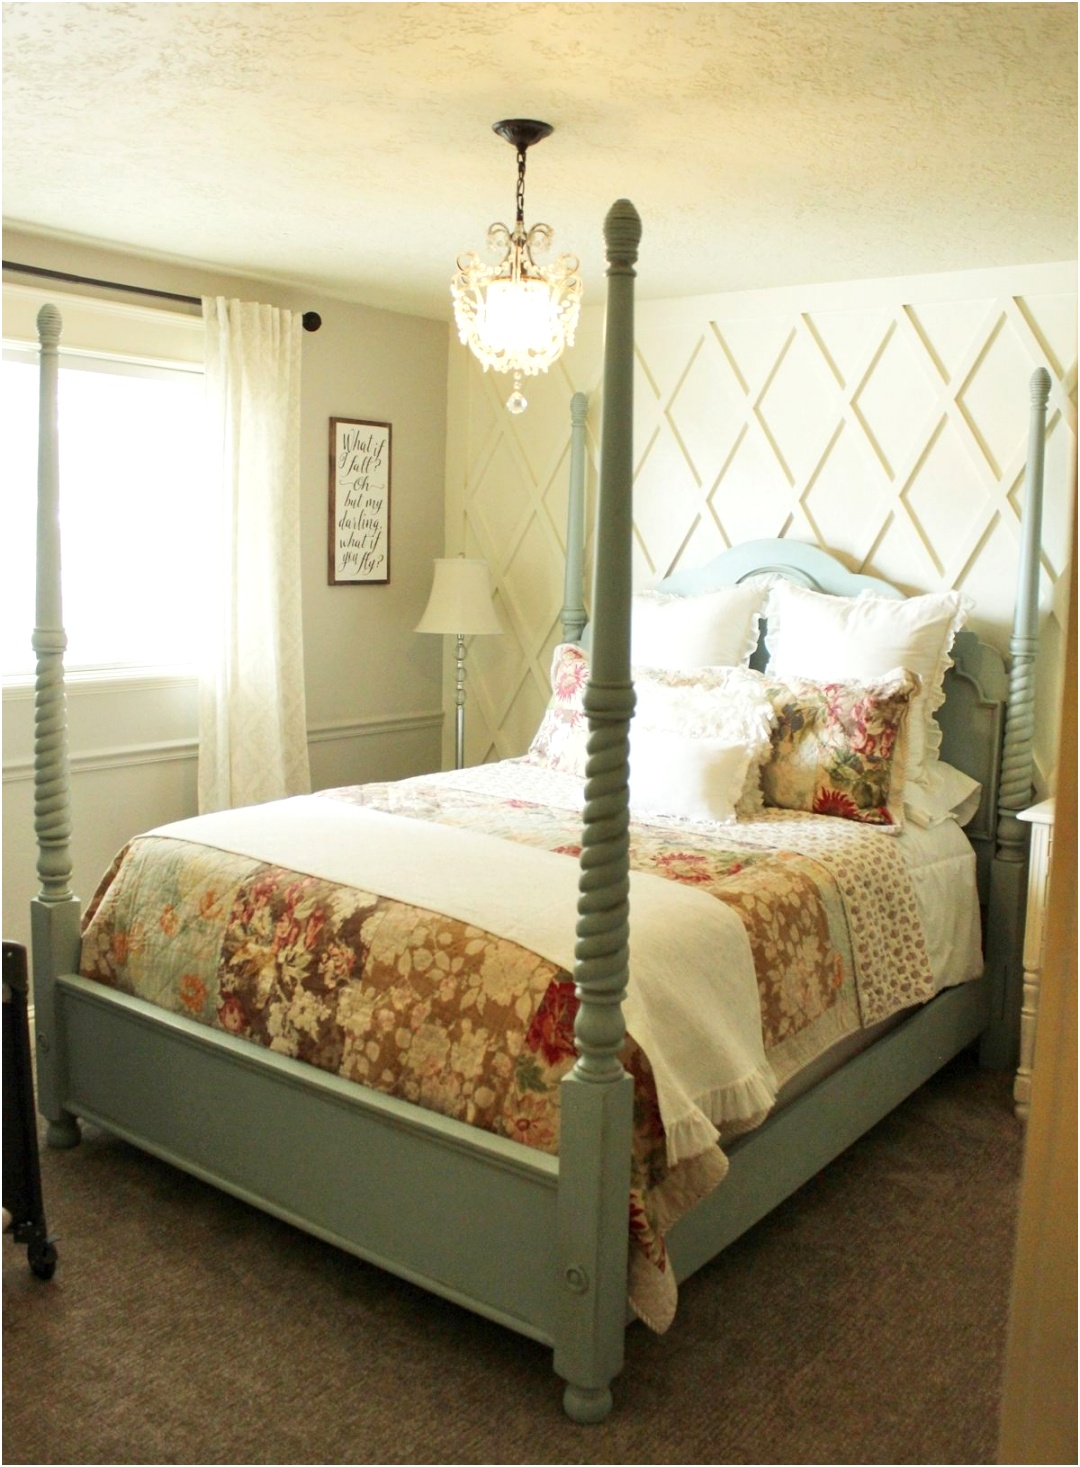 How to decorate a master bedroom ballance with walls